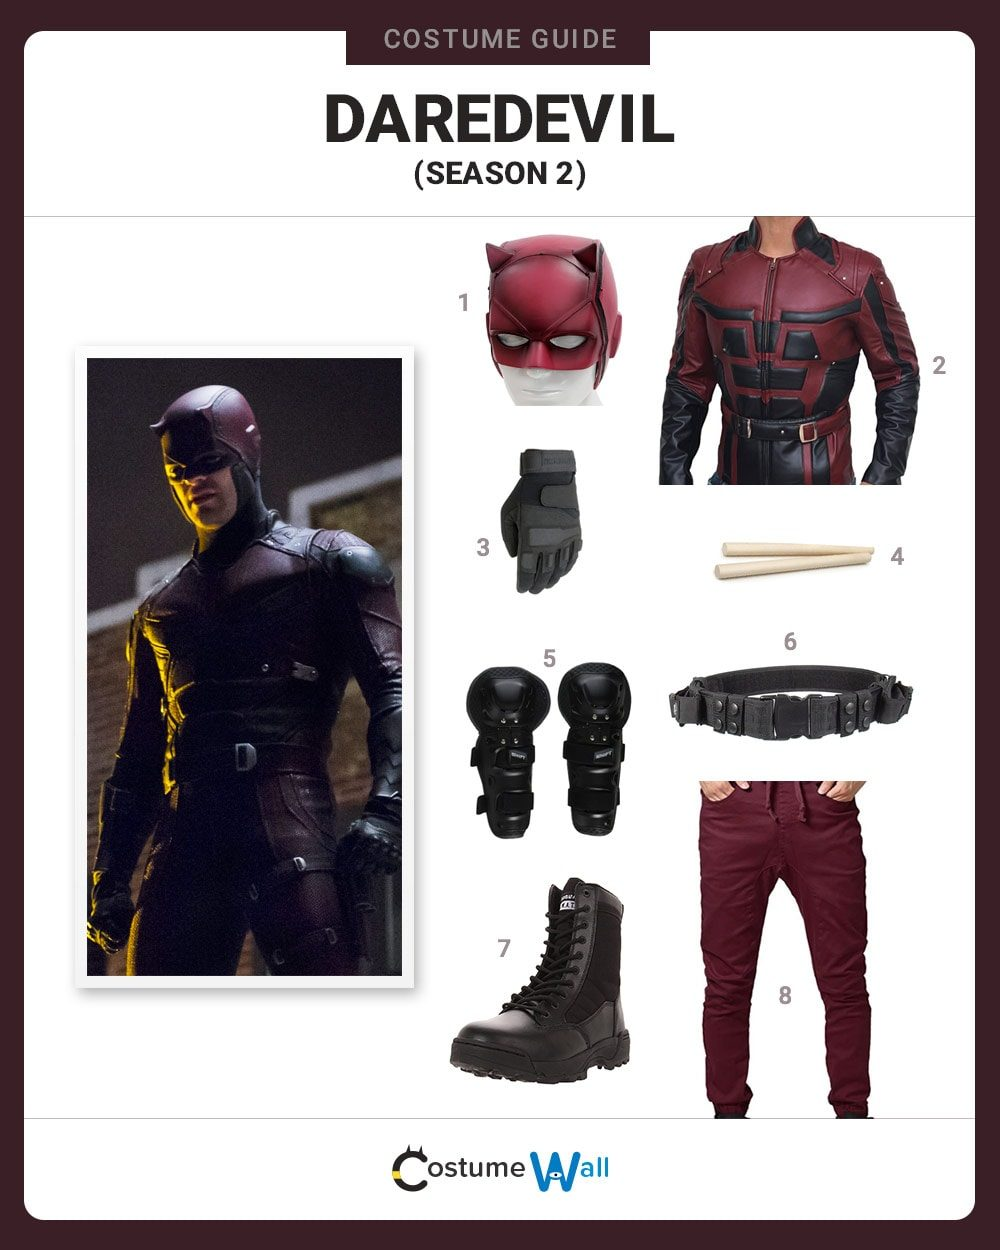 Daredevil (Season 2) Costume Guide